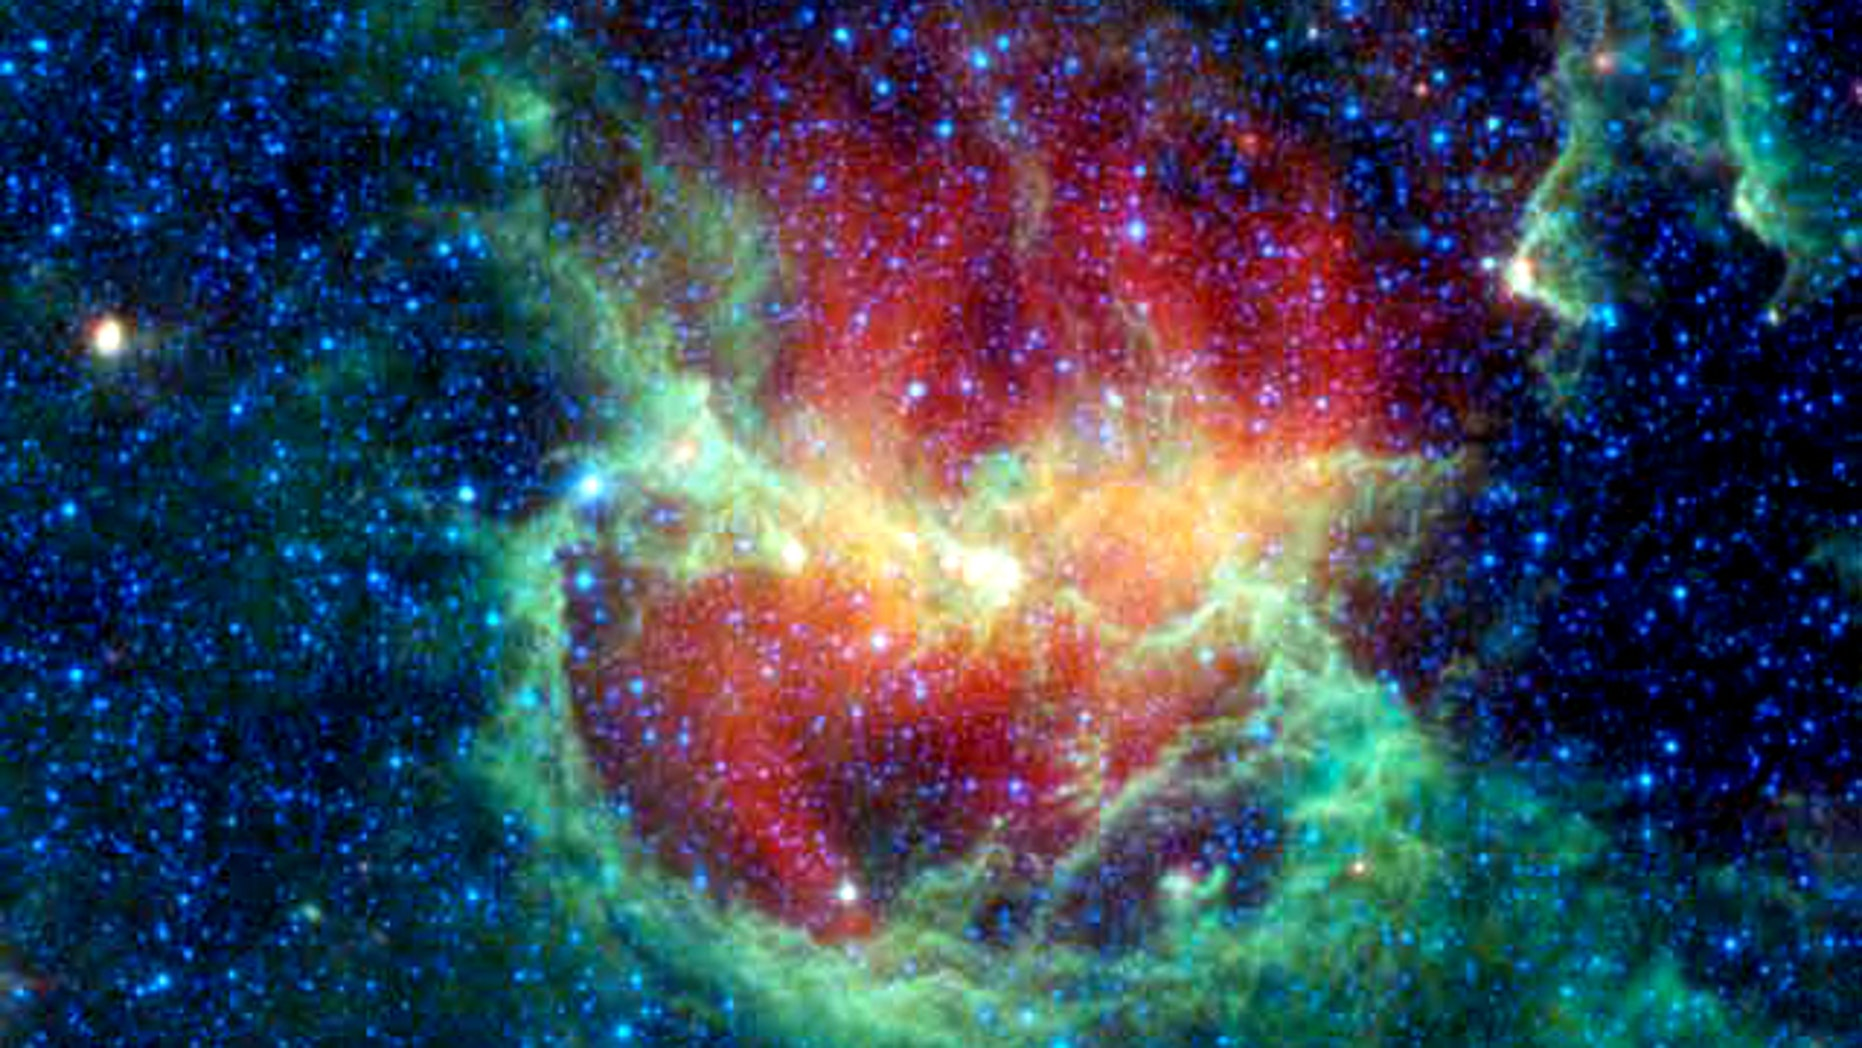 NASA's WISE telescope took this infrared image of a star-forming cloud called the Lambda Centauri Nebula, also known as the Running Chicken Nebula. The nebula is about 5,800 light-years from Earth, and it's home to a new cluster of stars born nearly 8 million years ago.